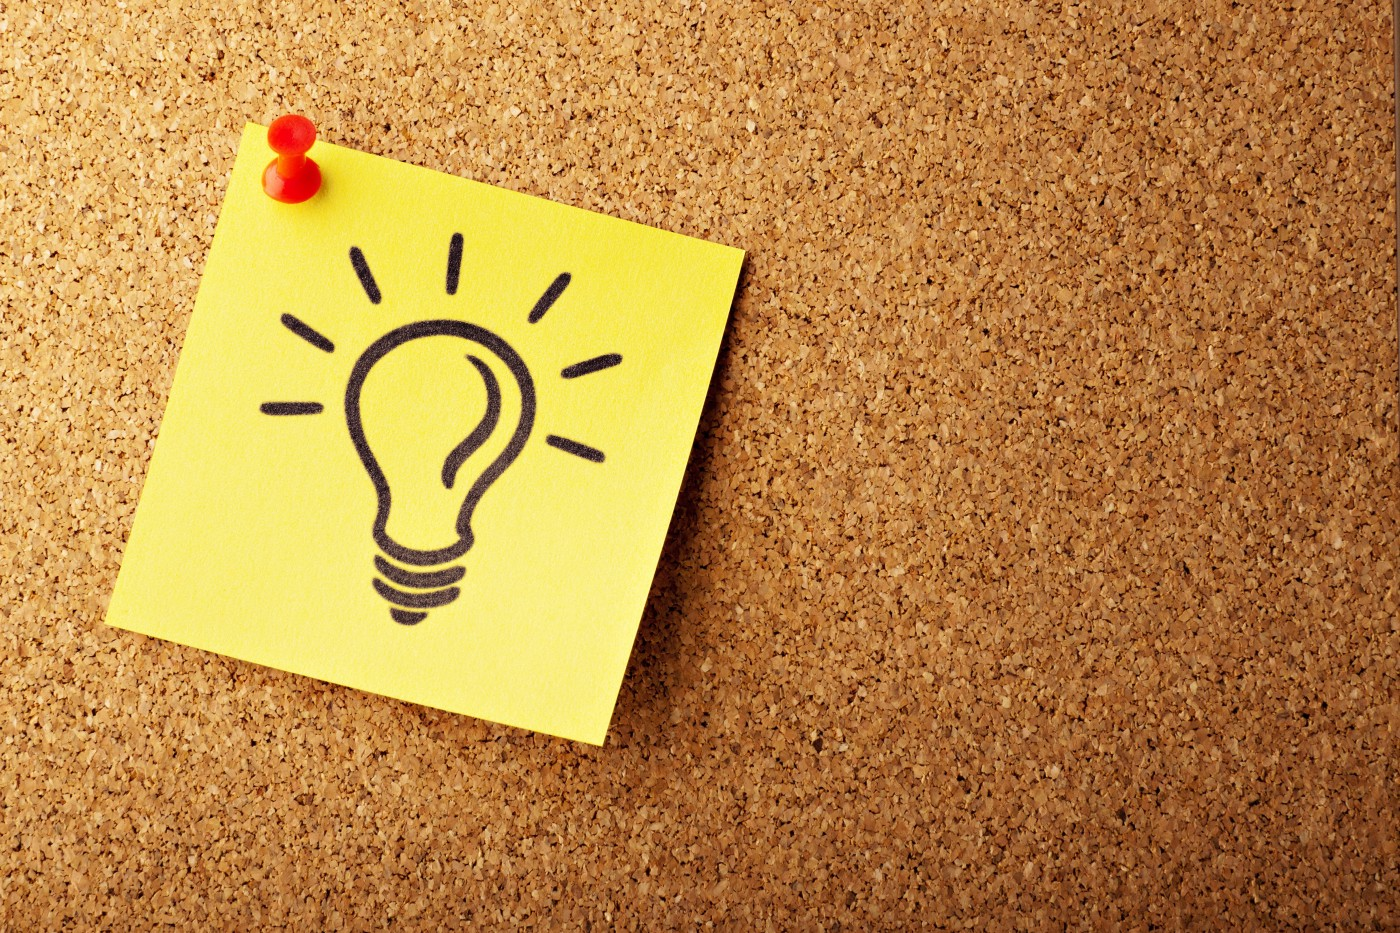 A sticky note with a light bulb drawn on it pinned to a bulletin board.